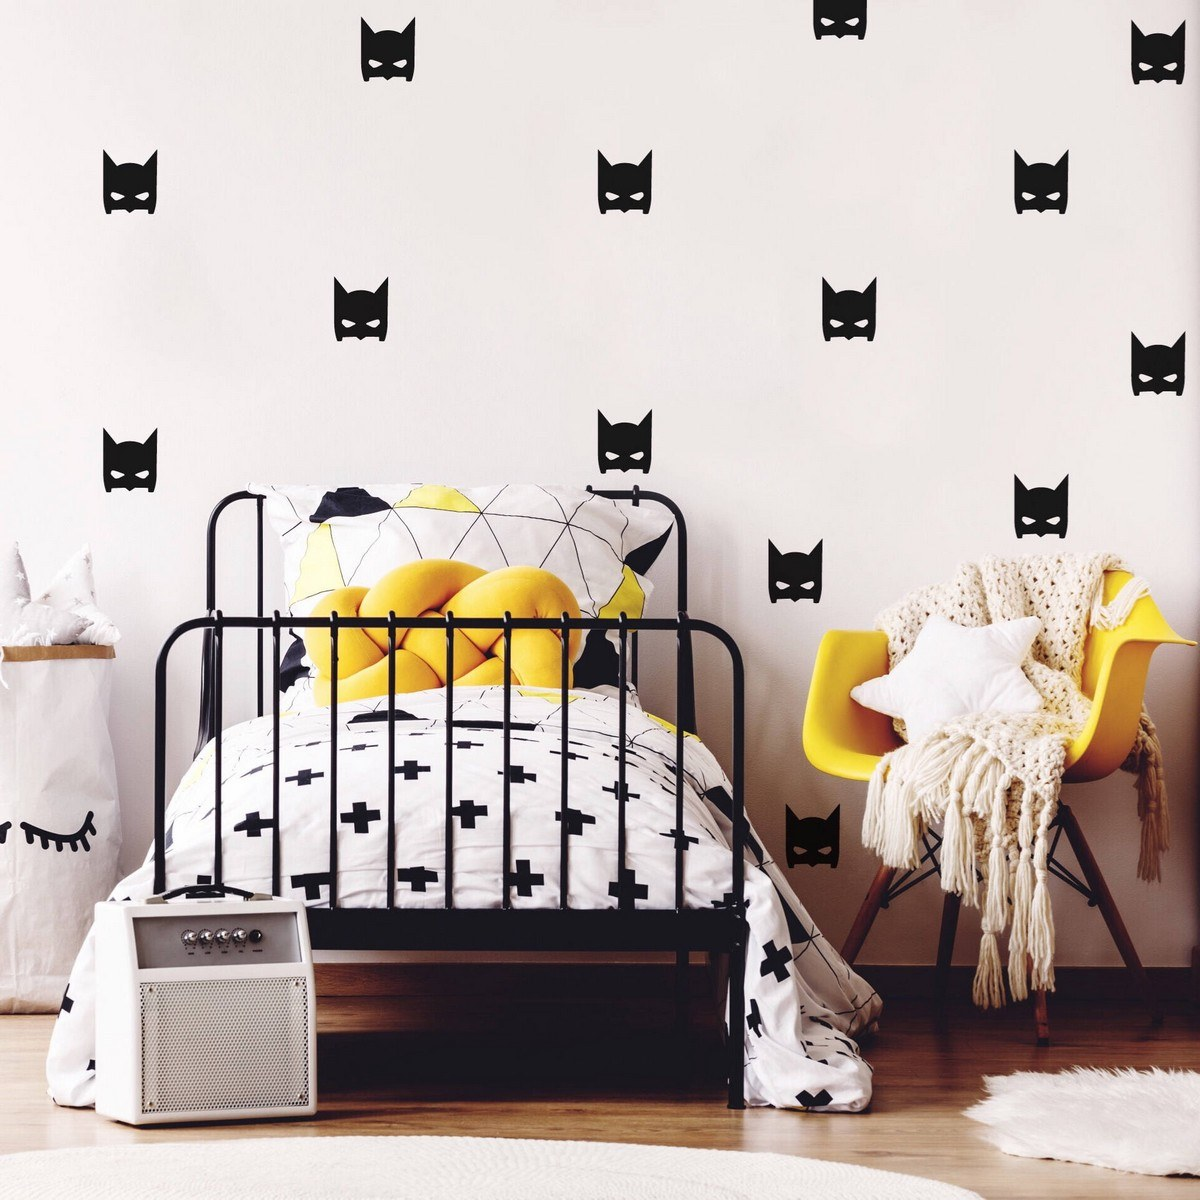 Have a baby boy on the way or know someone who does? Time to start getting the nursery ready with some adorable decor ideas perfectly fit for baby's room.